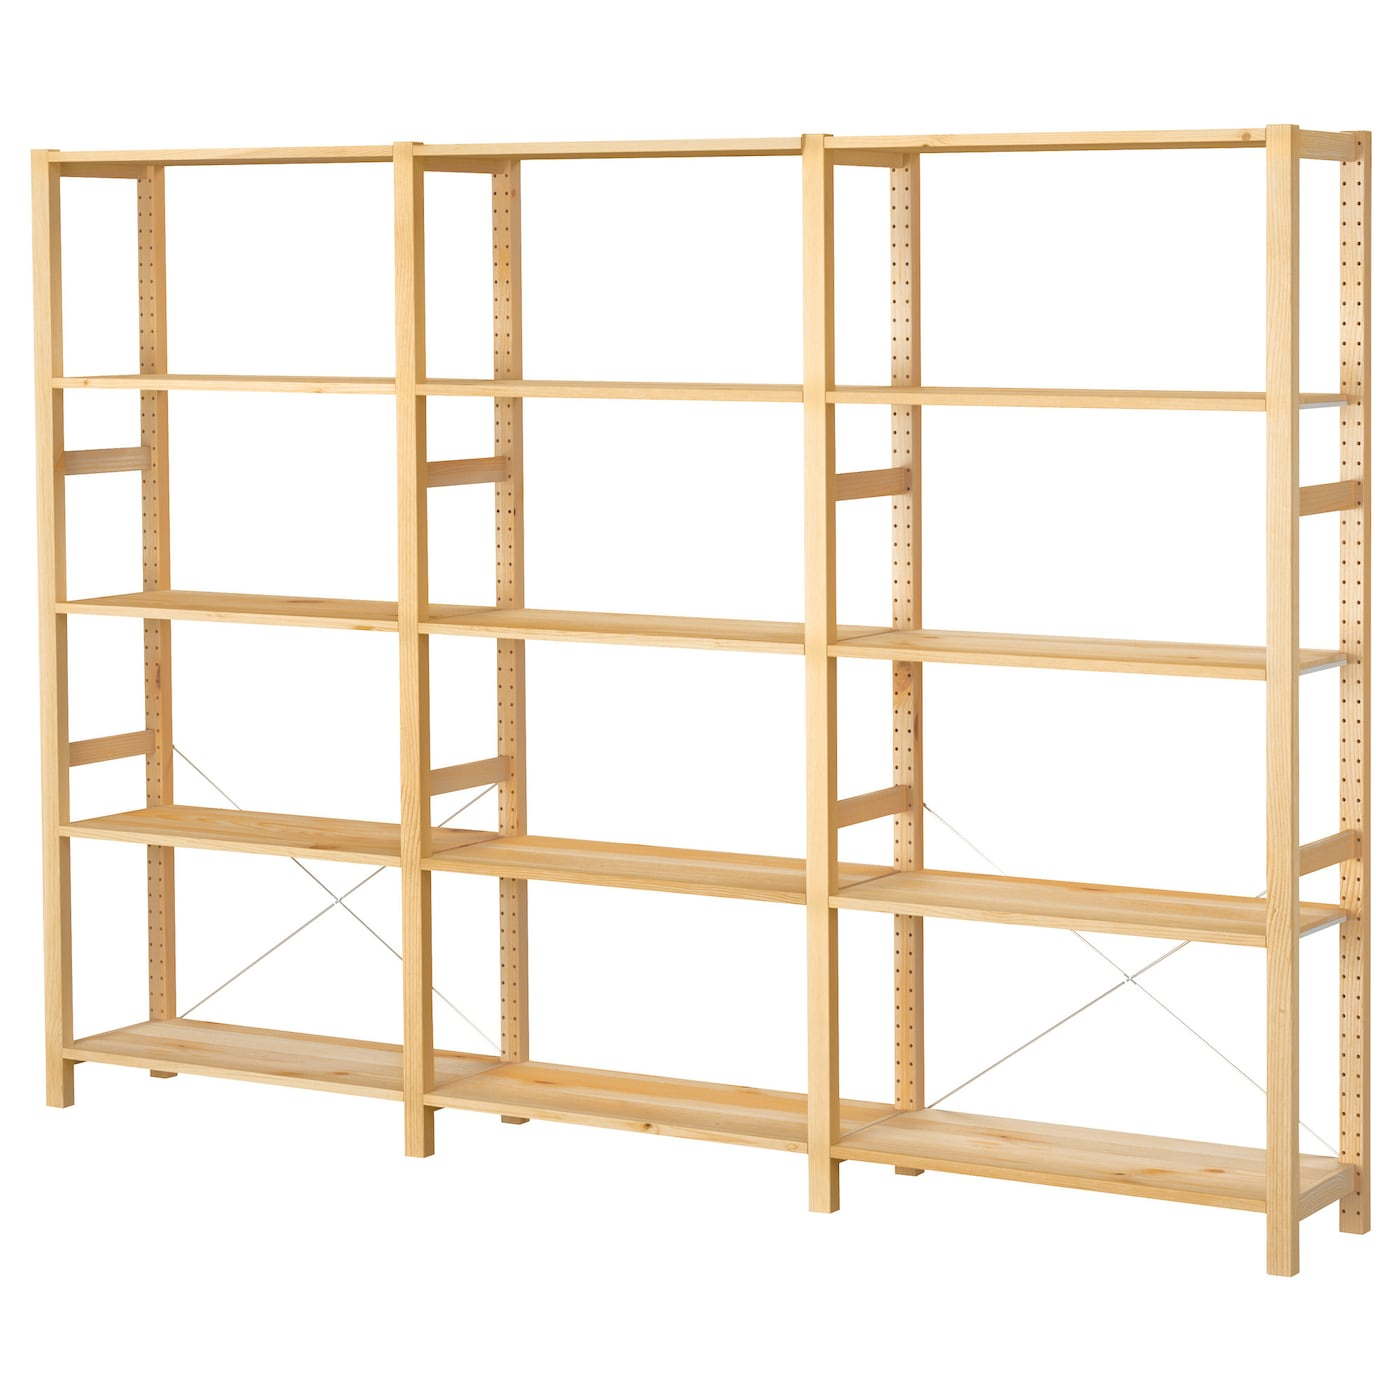 Ivar 3 sections shelves pine 259 x 30 x 179 cm ikea for Ikea scaffali ivar